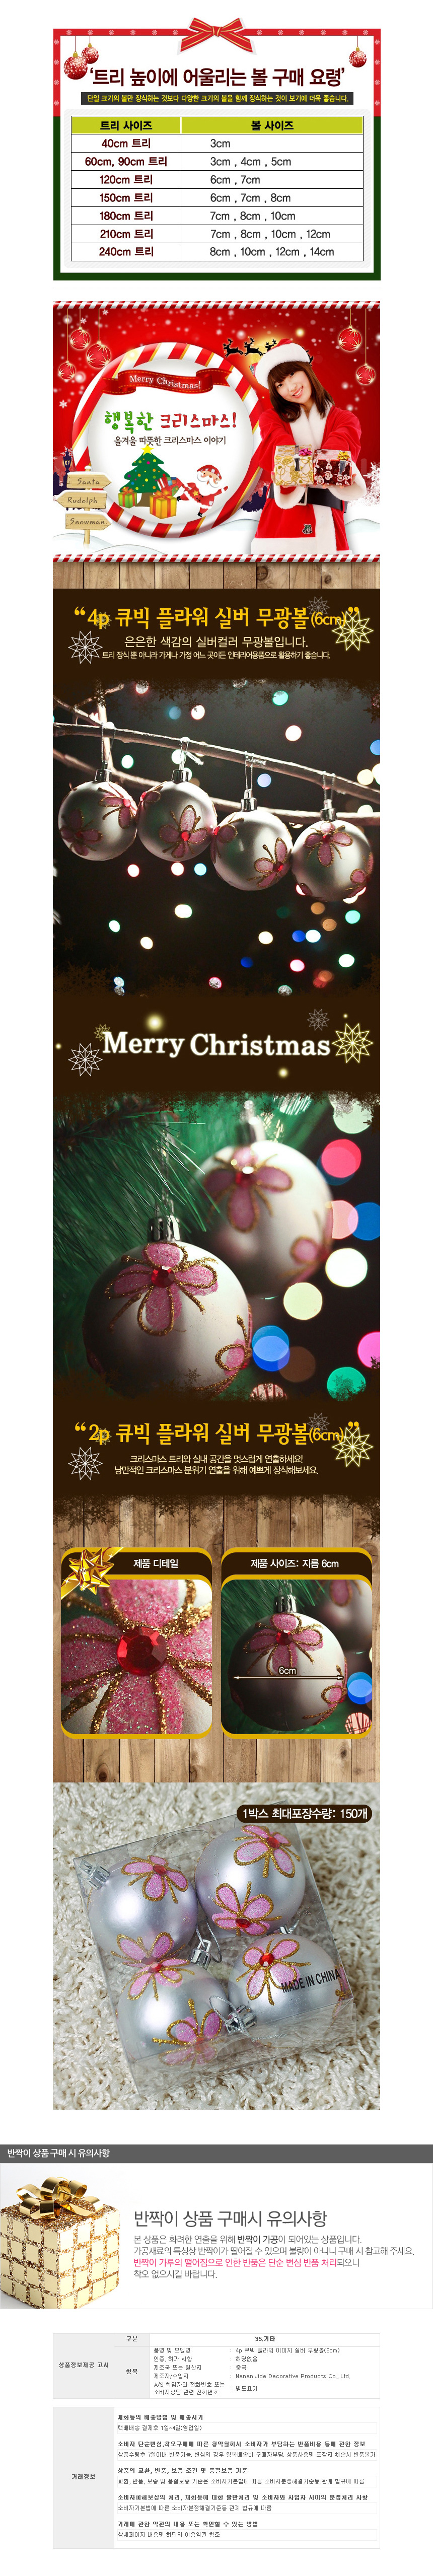 [ WINEQOK ] Christmas Goods / Cubic Flower Image Silver Matte Ball 1p